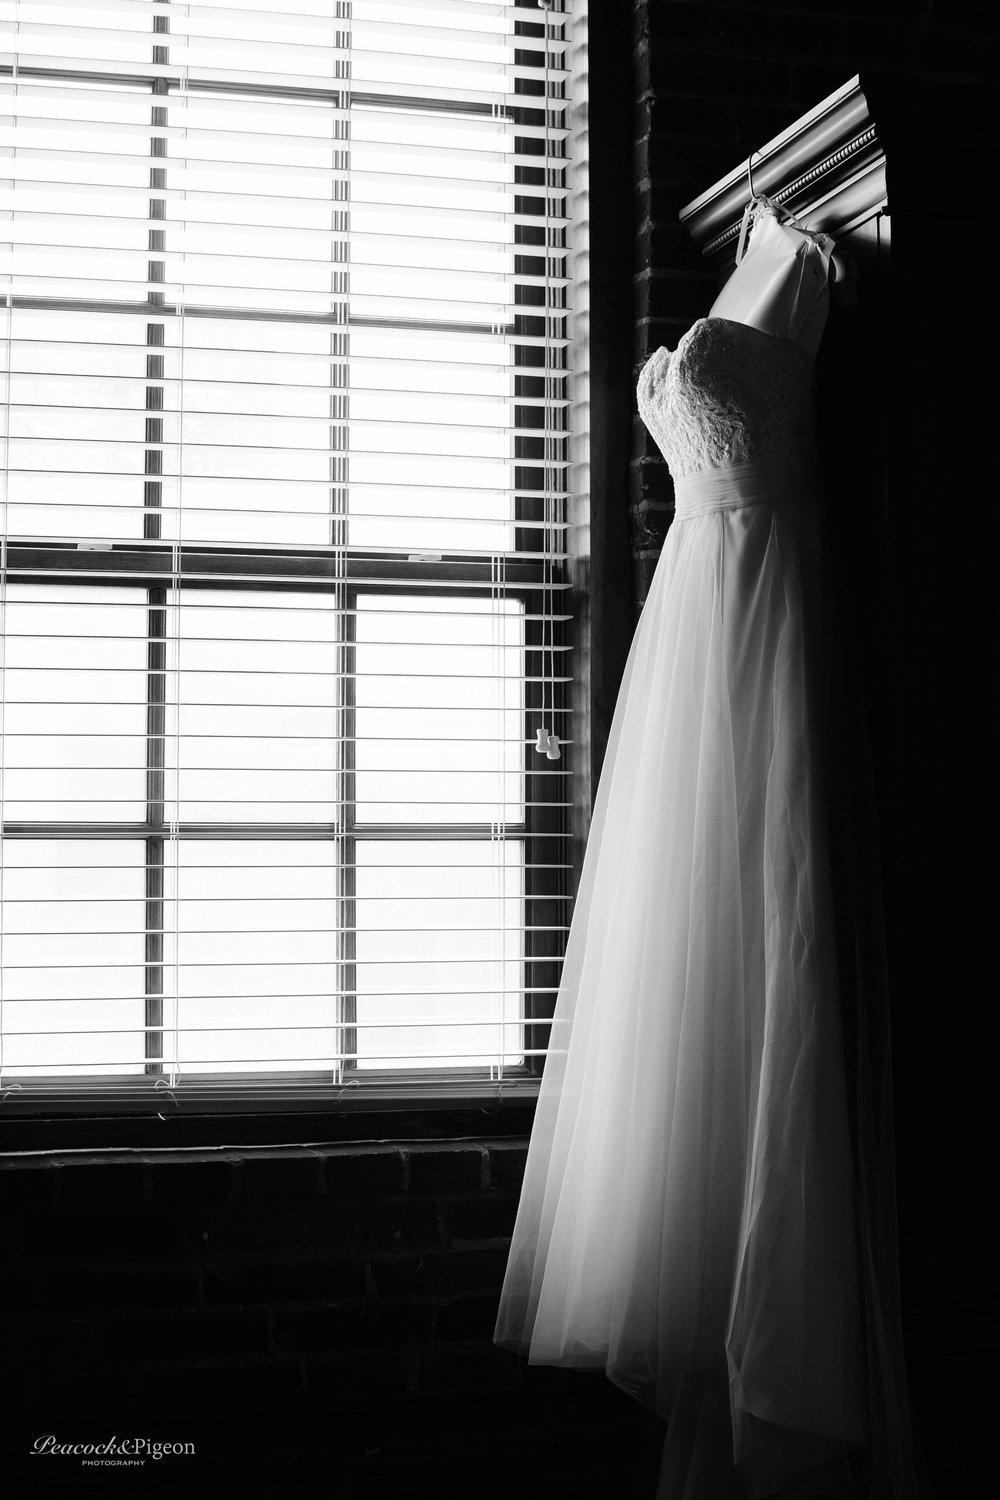 Callum_and_Sara's_Wedding_at_the_Cork_Factory_Hotel_in_Lancaster-Part_One_The_Hotel_Black_and_White_Watermarked-6.jpg